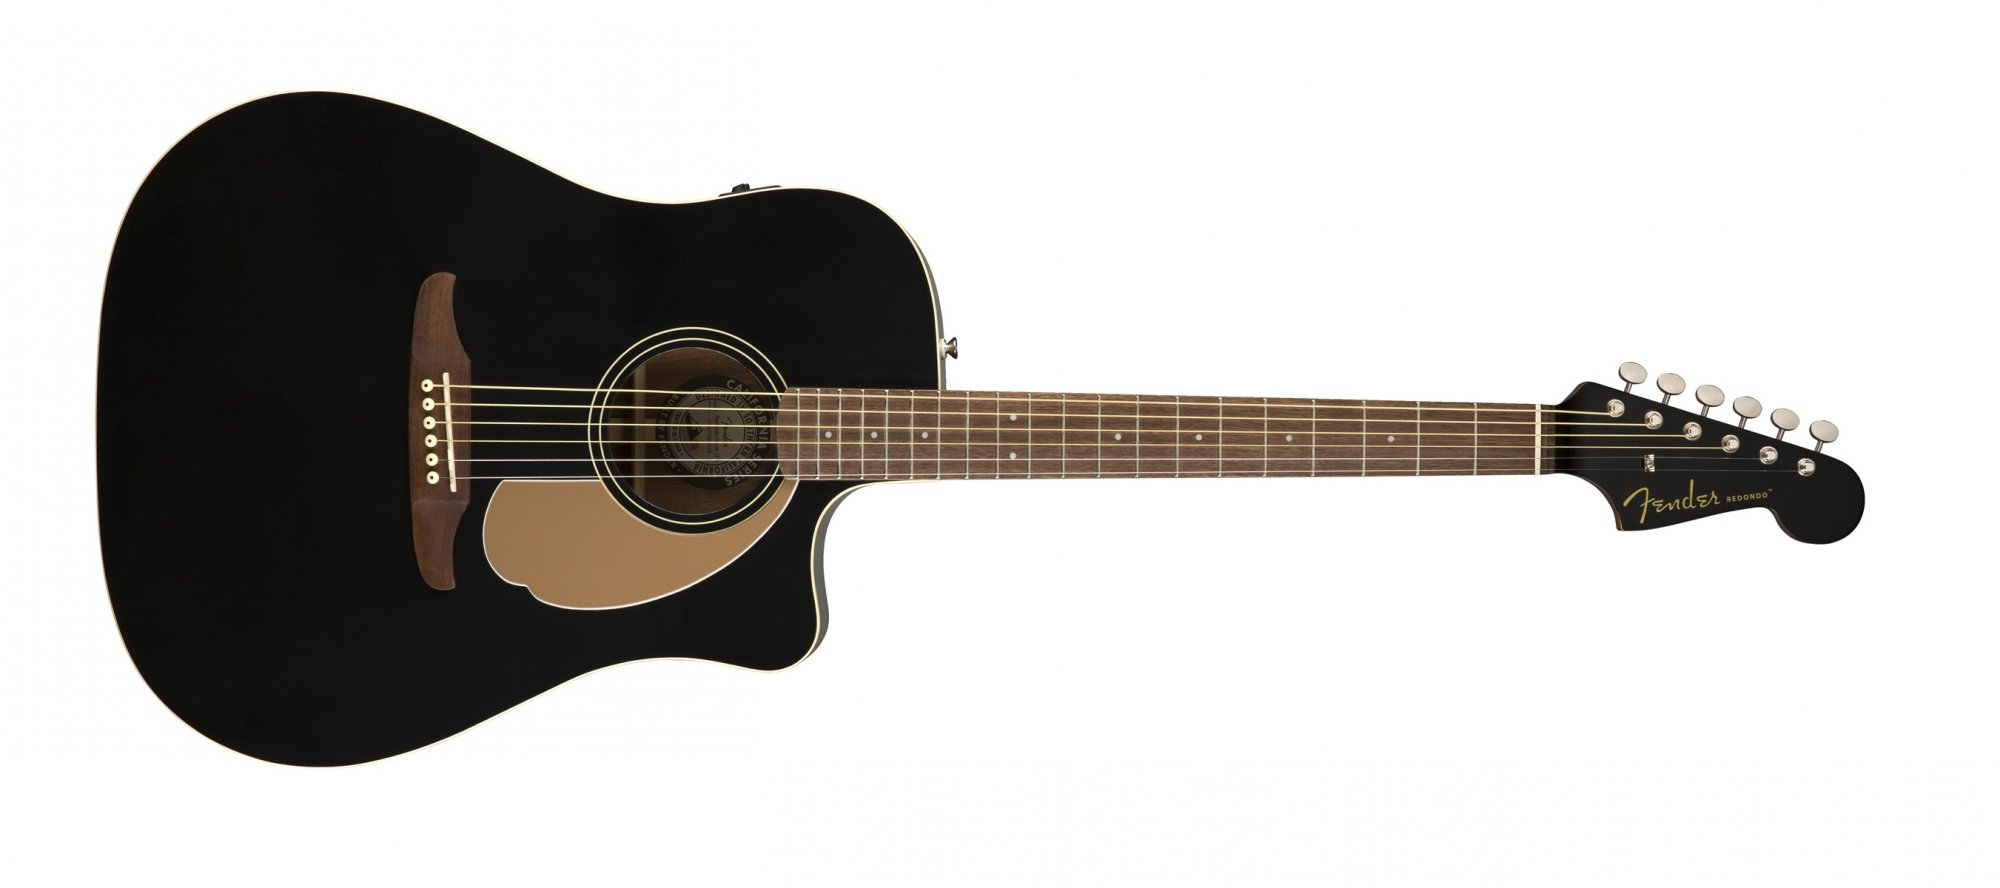 Fender Redondo Player Acoustic Electric Guitar WN Jettly Black